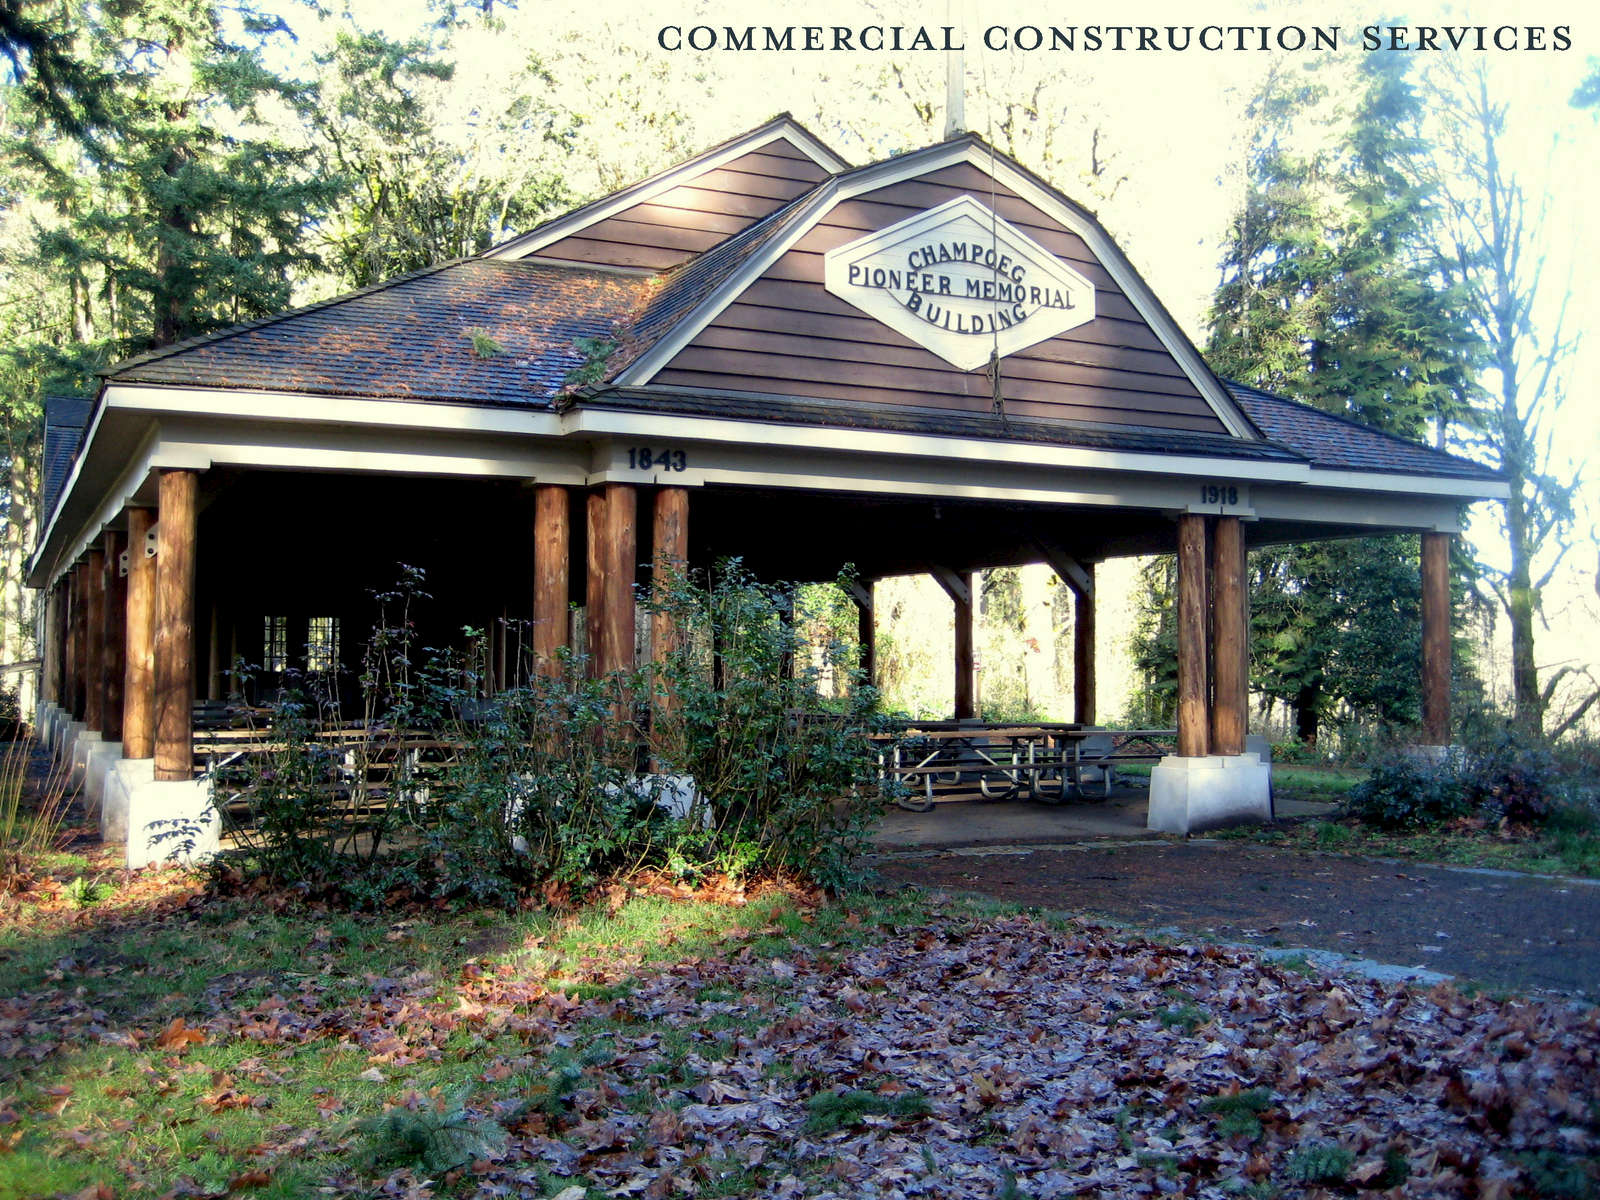 commercial-construction-services